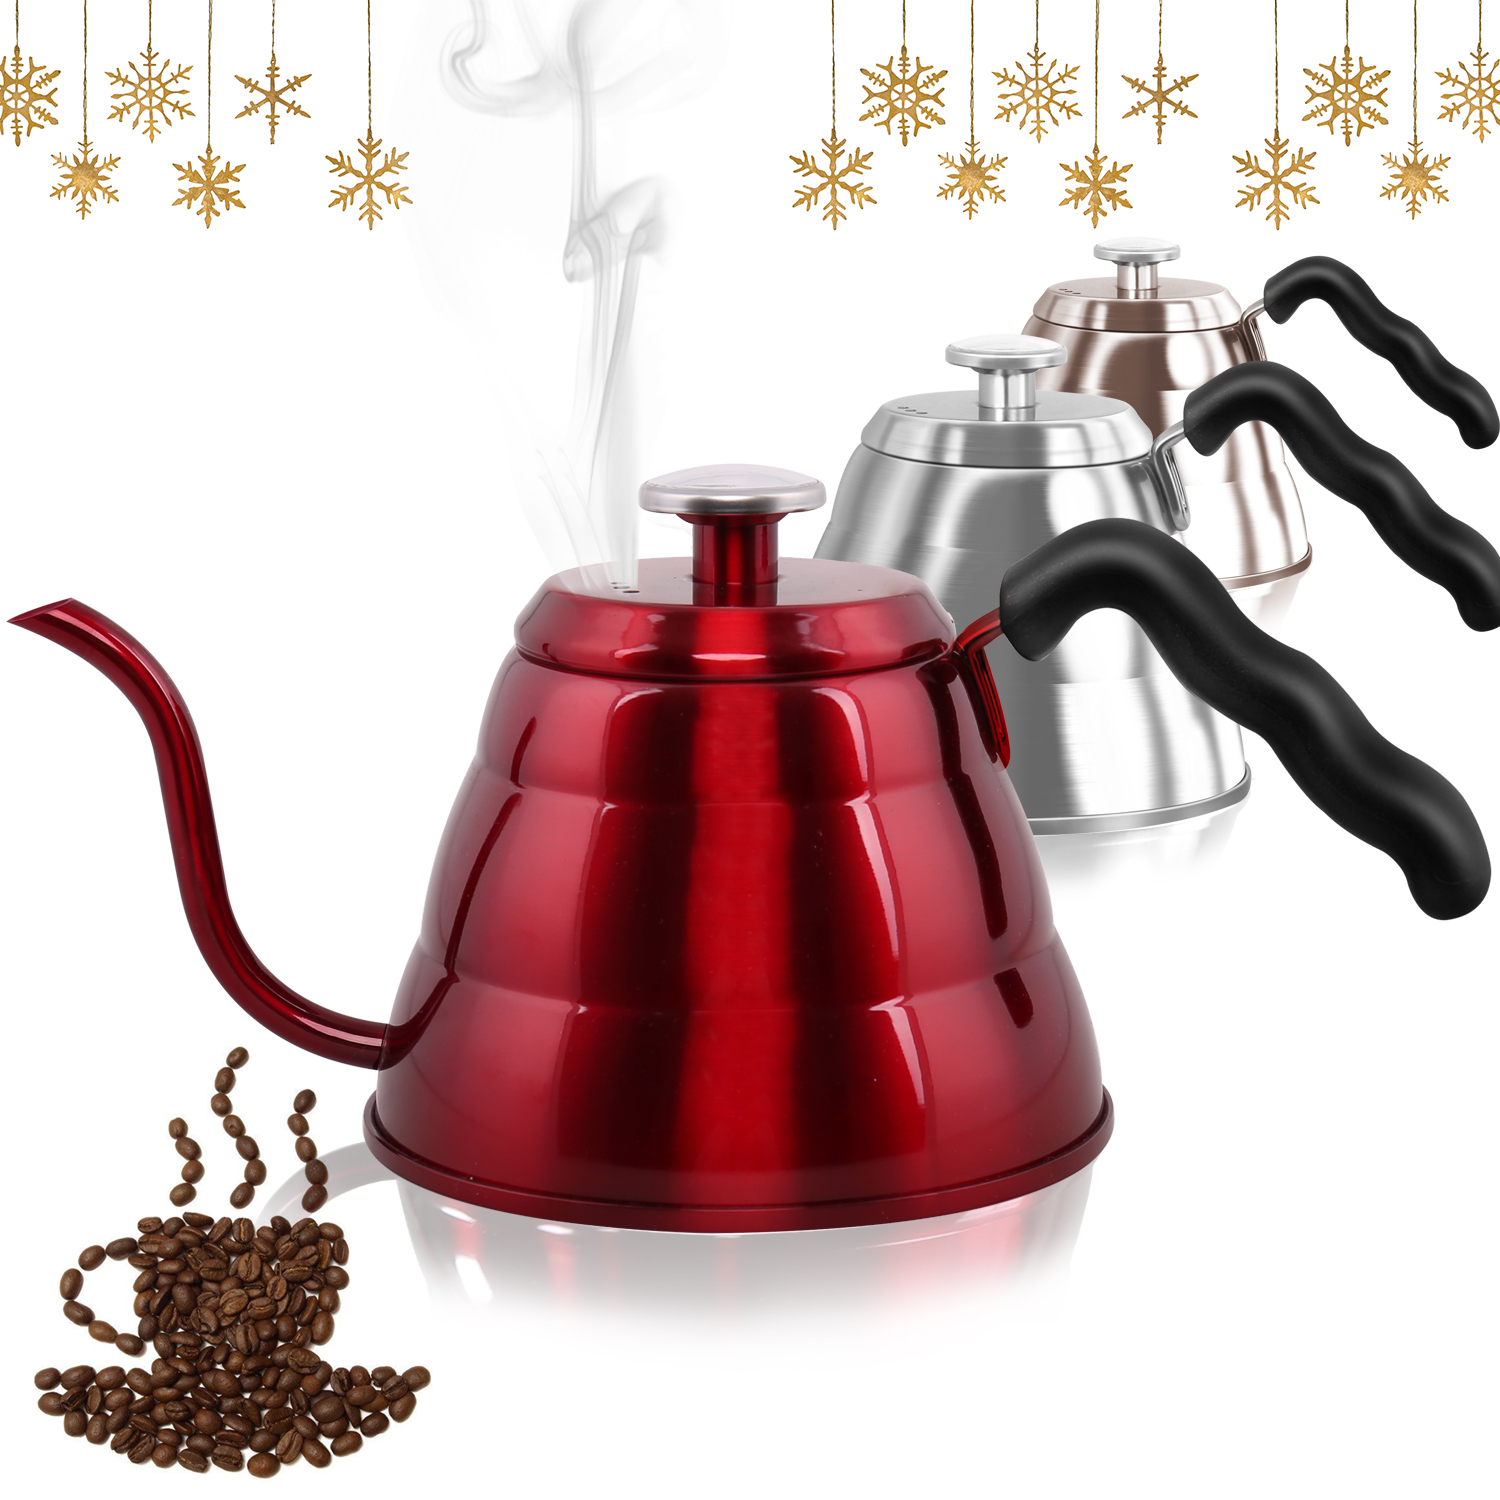 tainless Steel Pour Over Coffee Kettle with Built-in Thermometer